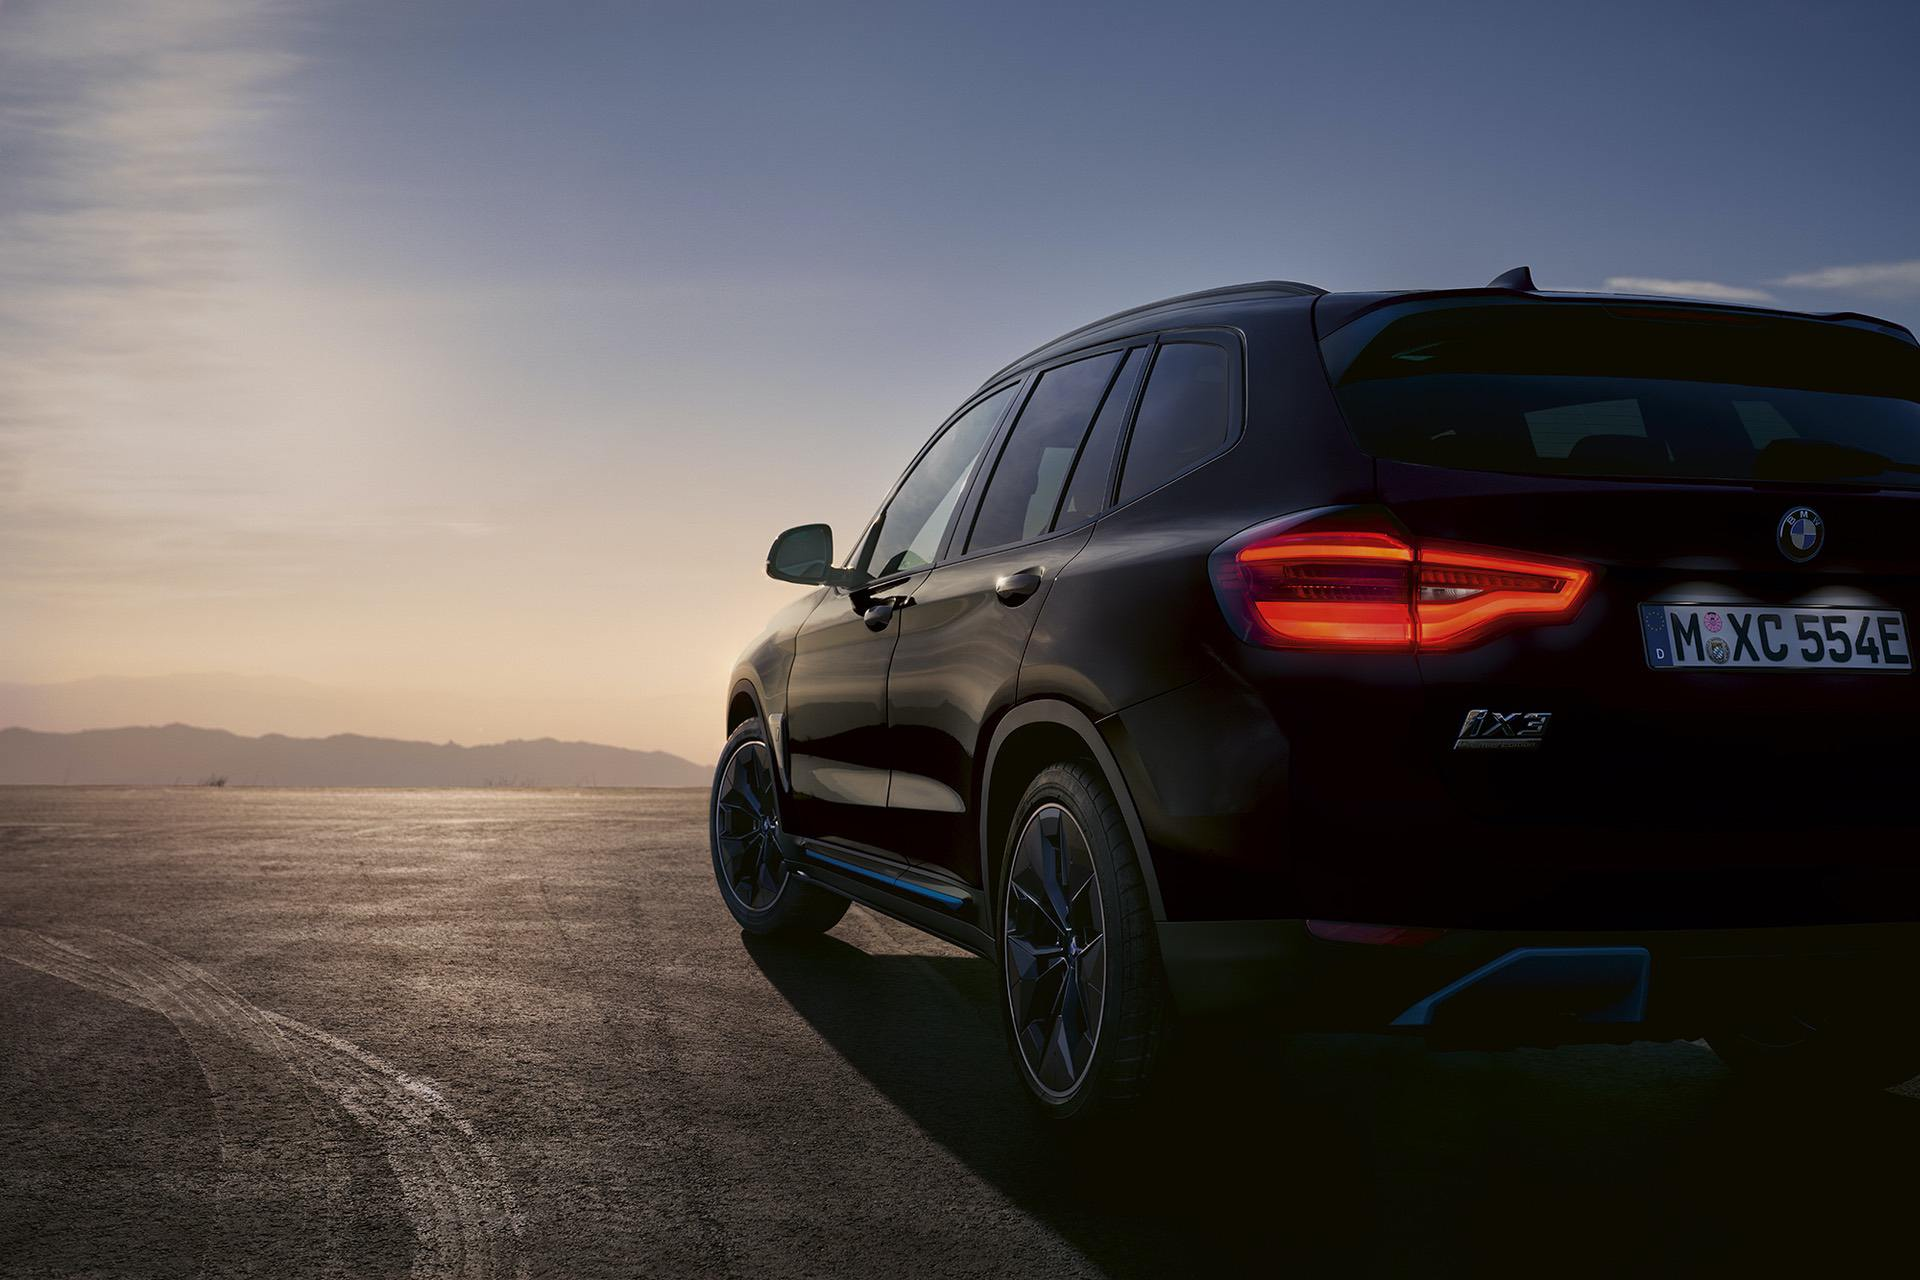 BMW launches the iX3 Premier Edition and Pro in Carbon Black